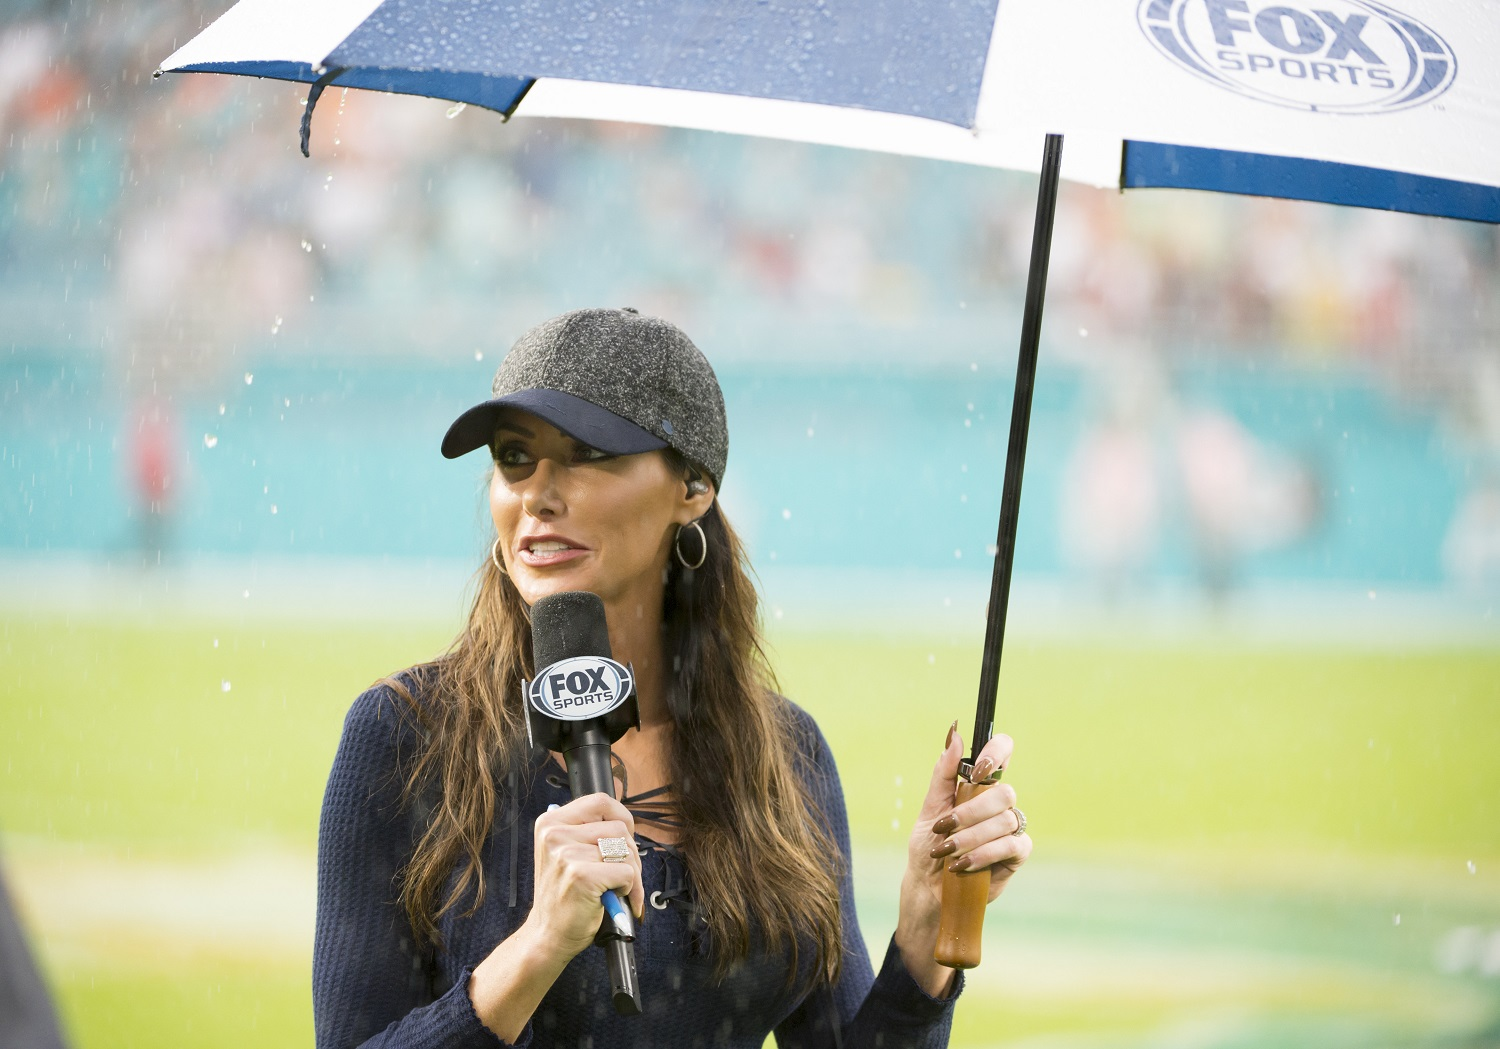 Holly Sonders was a top golfer in the junior ranks who attended Michigan State on scholarship before beginning a career in broadcasting. | Doug Murray/Icon Sportswire via Getty Images